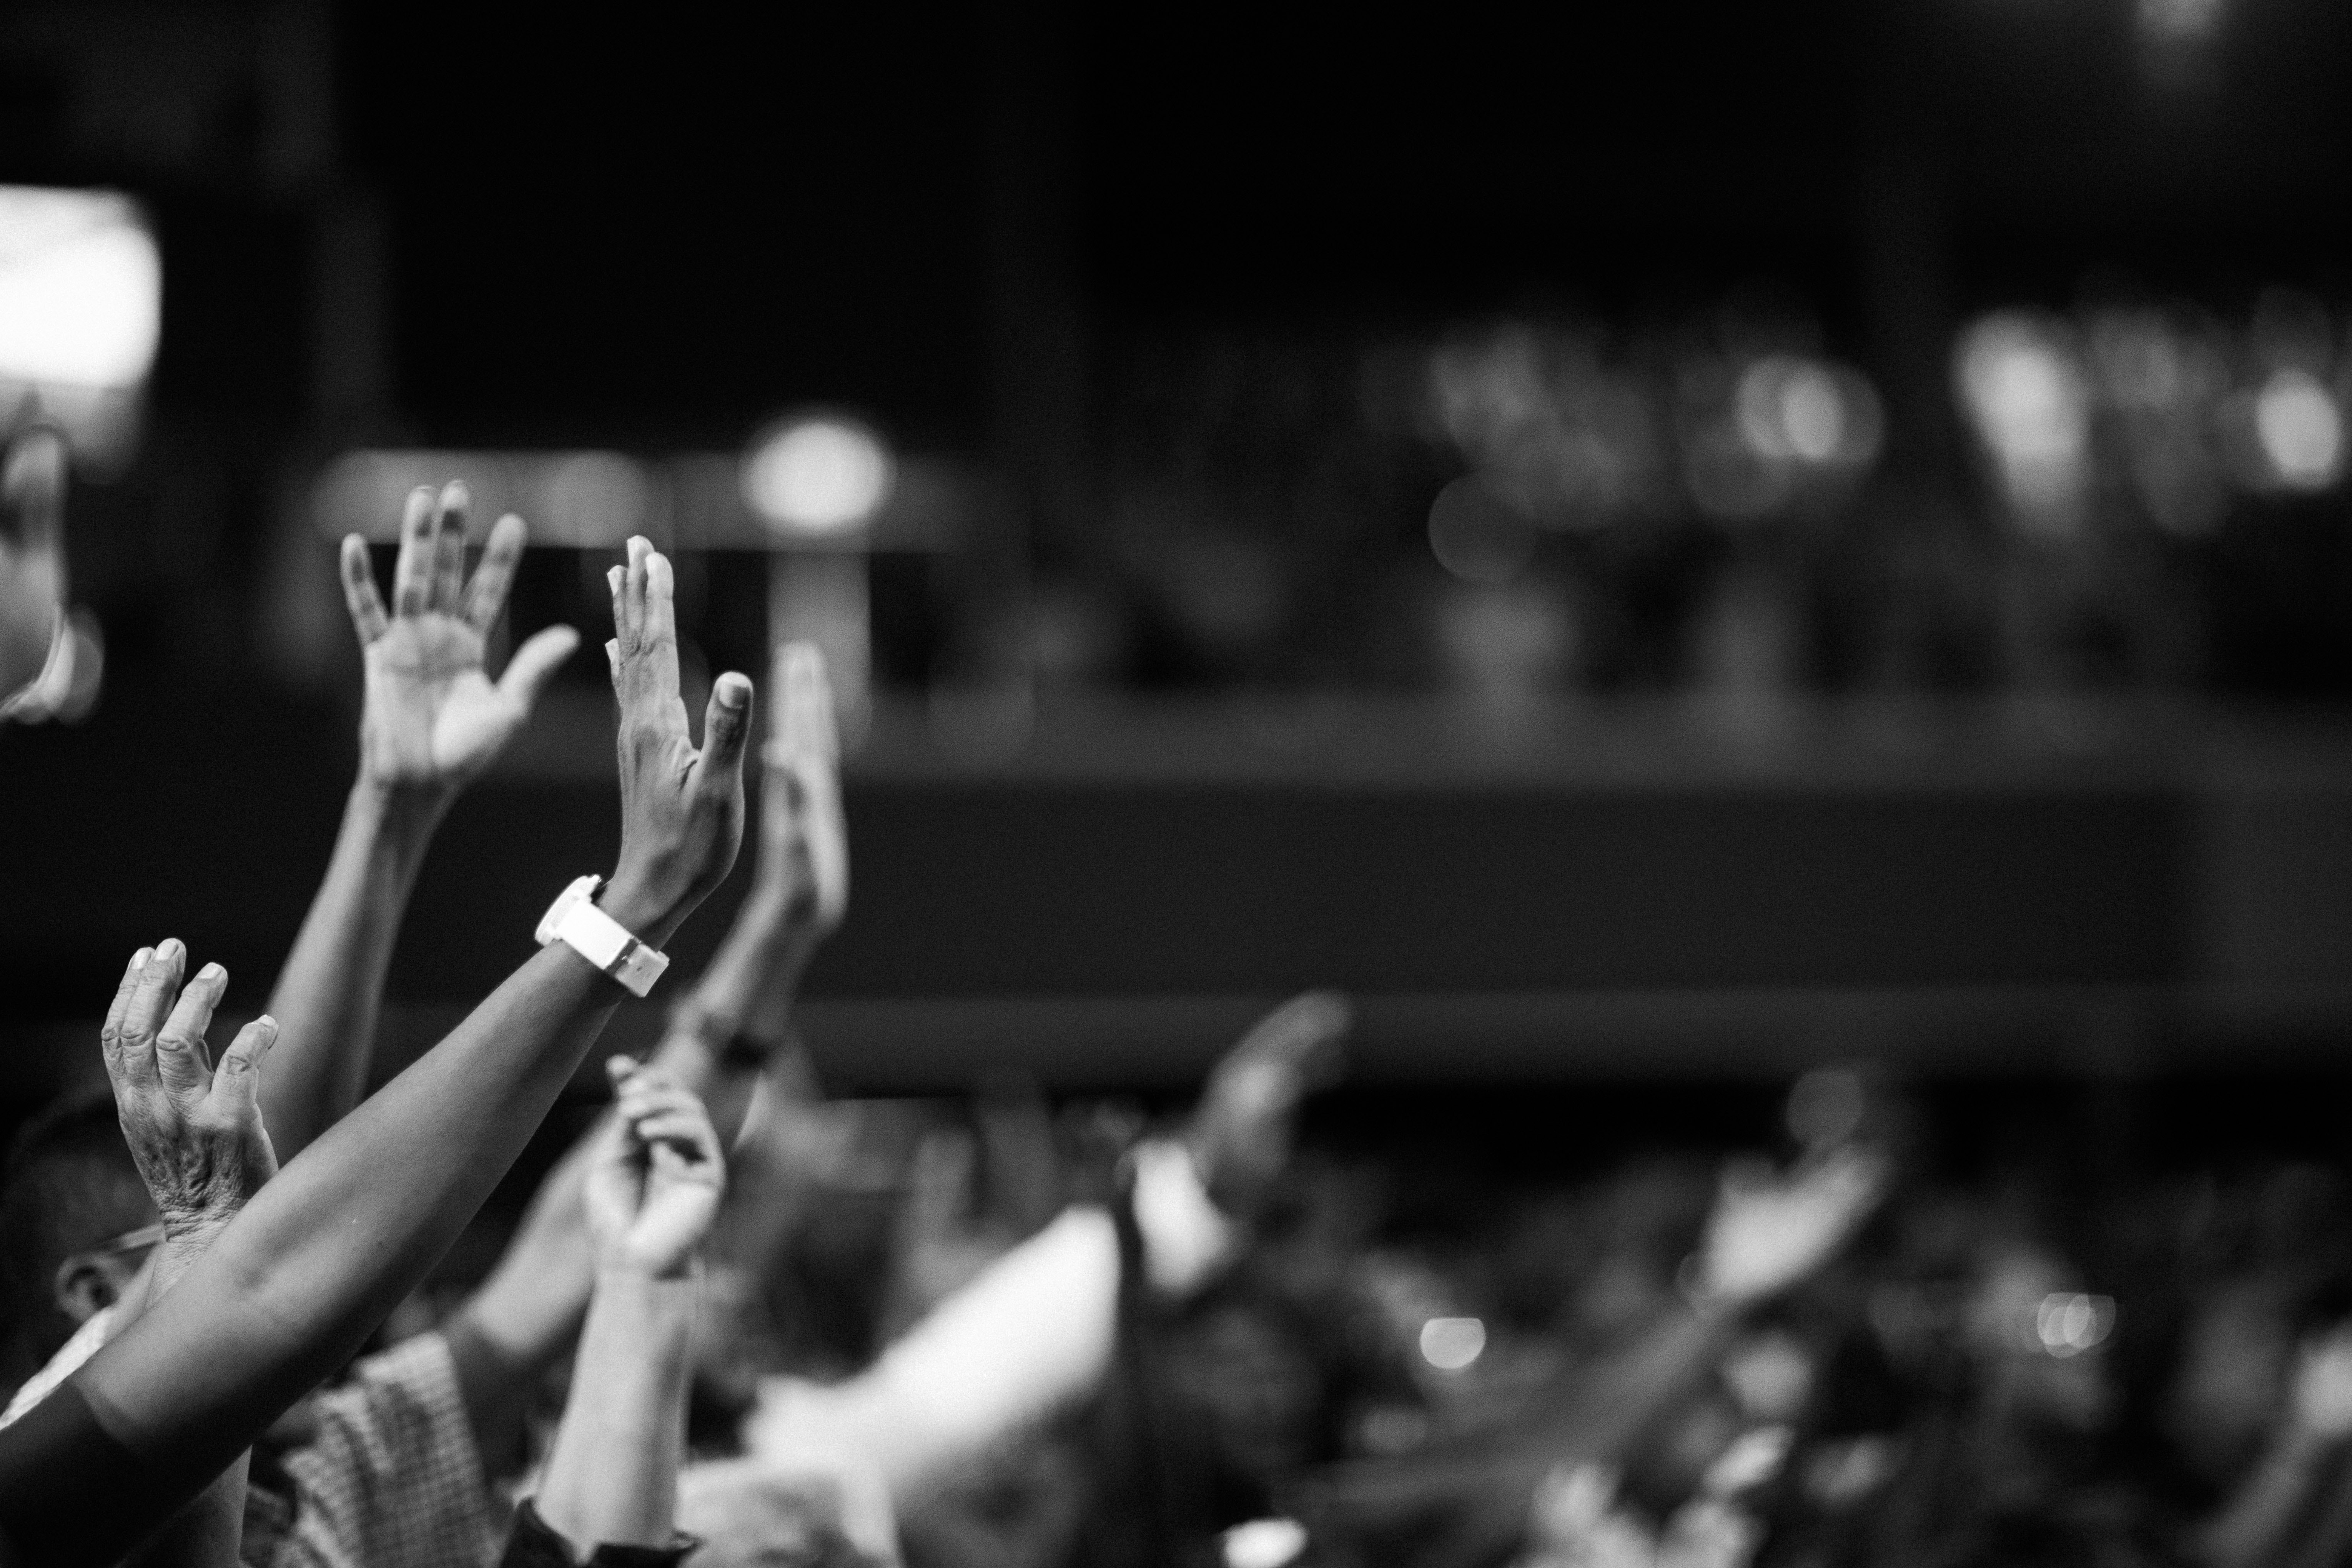 Grayscale Photography Of Hands Waving · Free Stock Photo